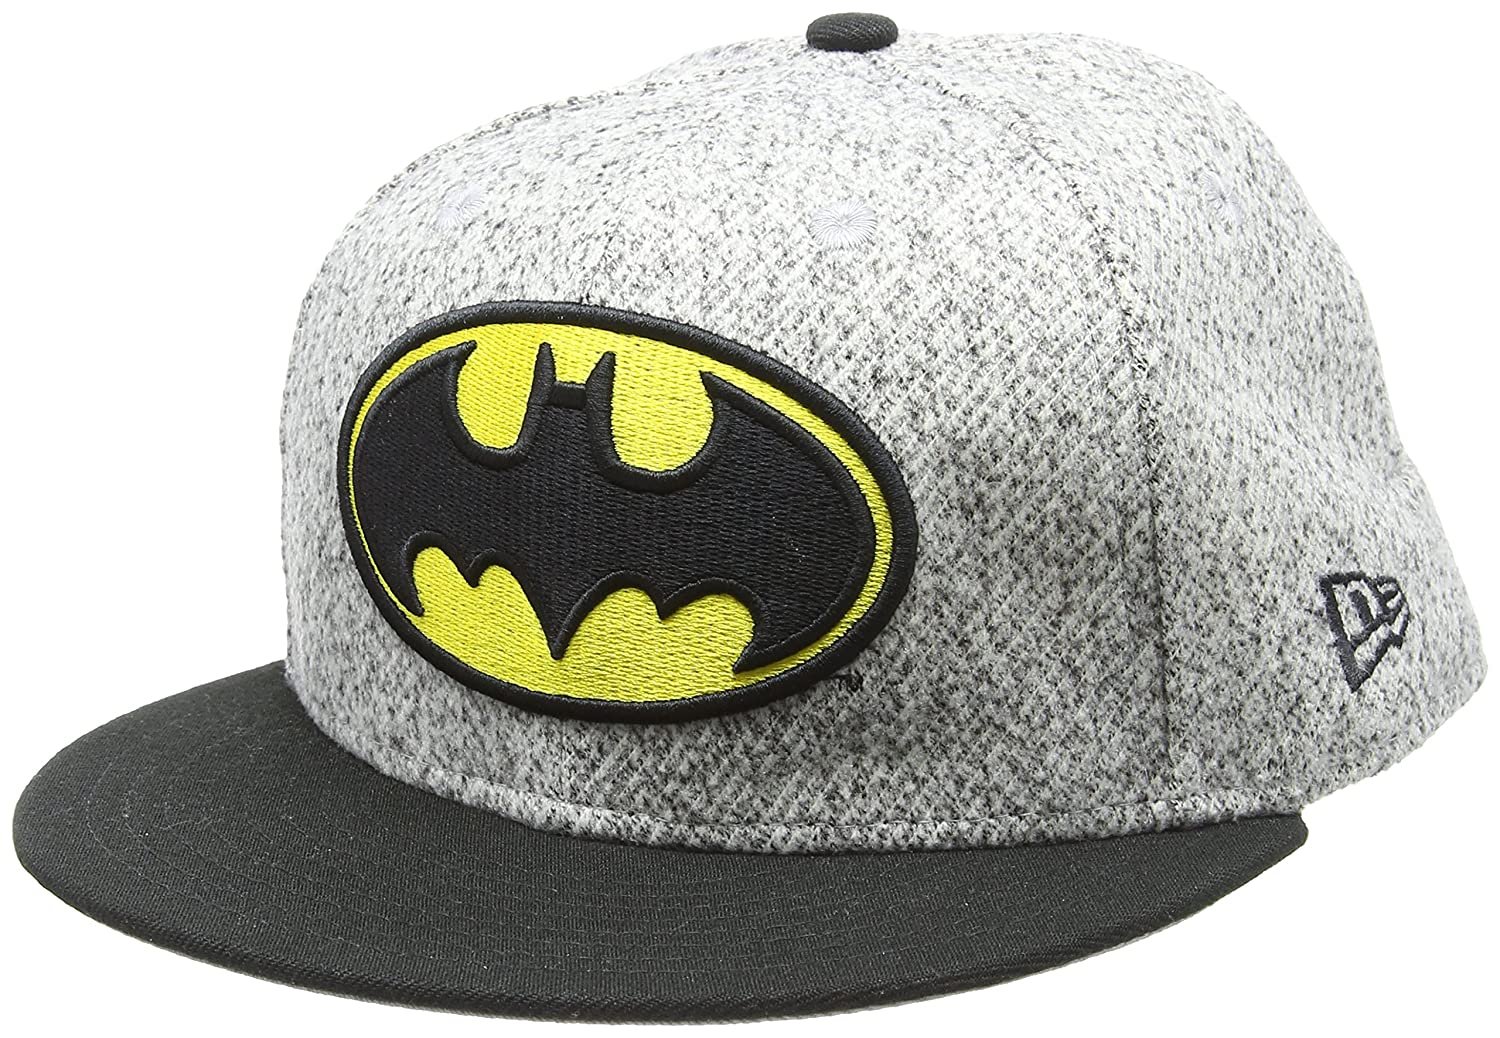 New Era Hommes 59FIFTY Fitted Batman Marvel Casquette Gris